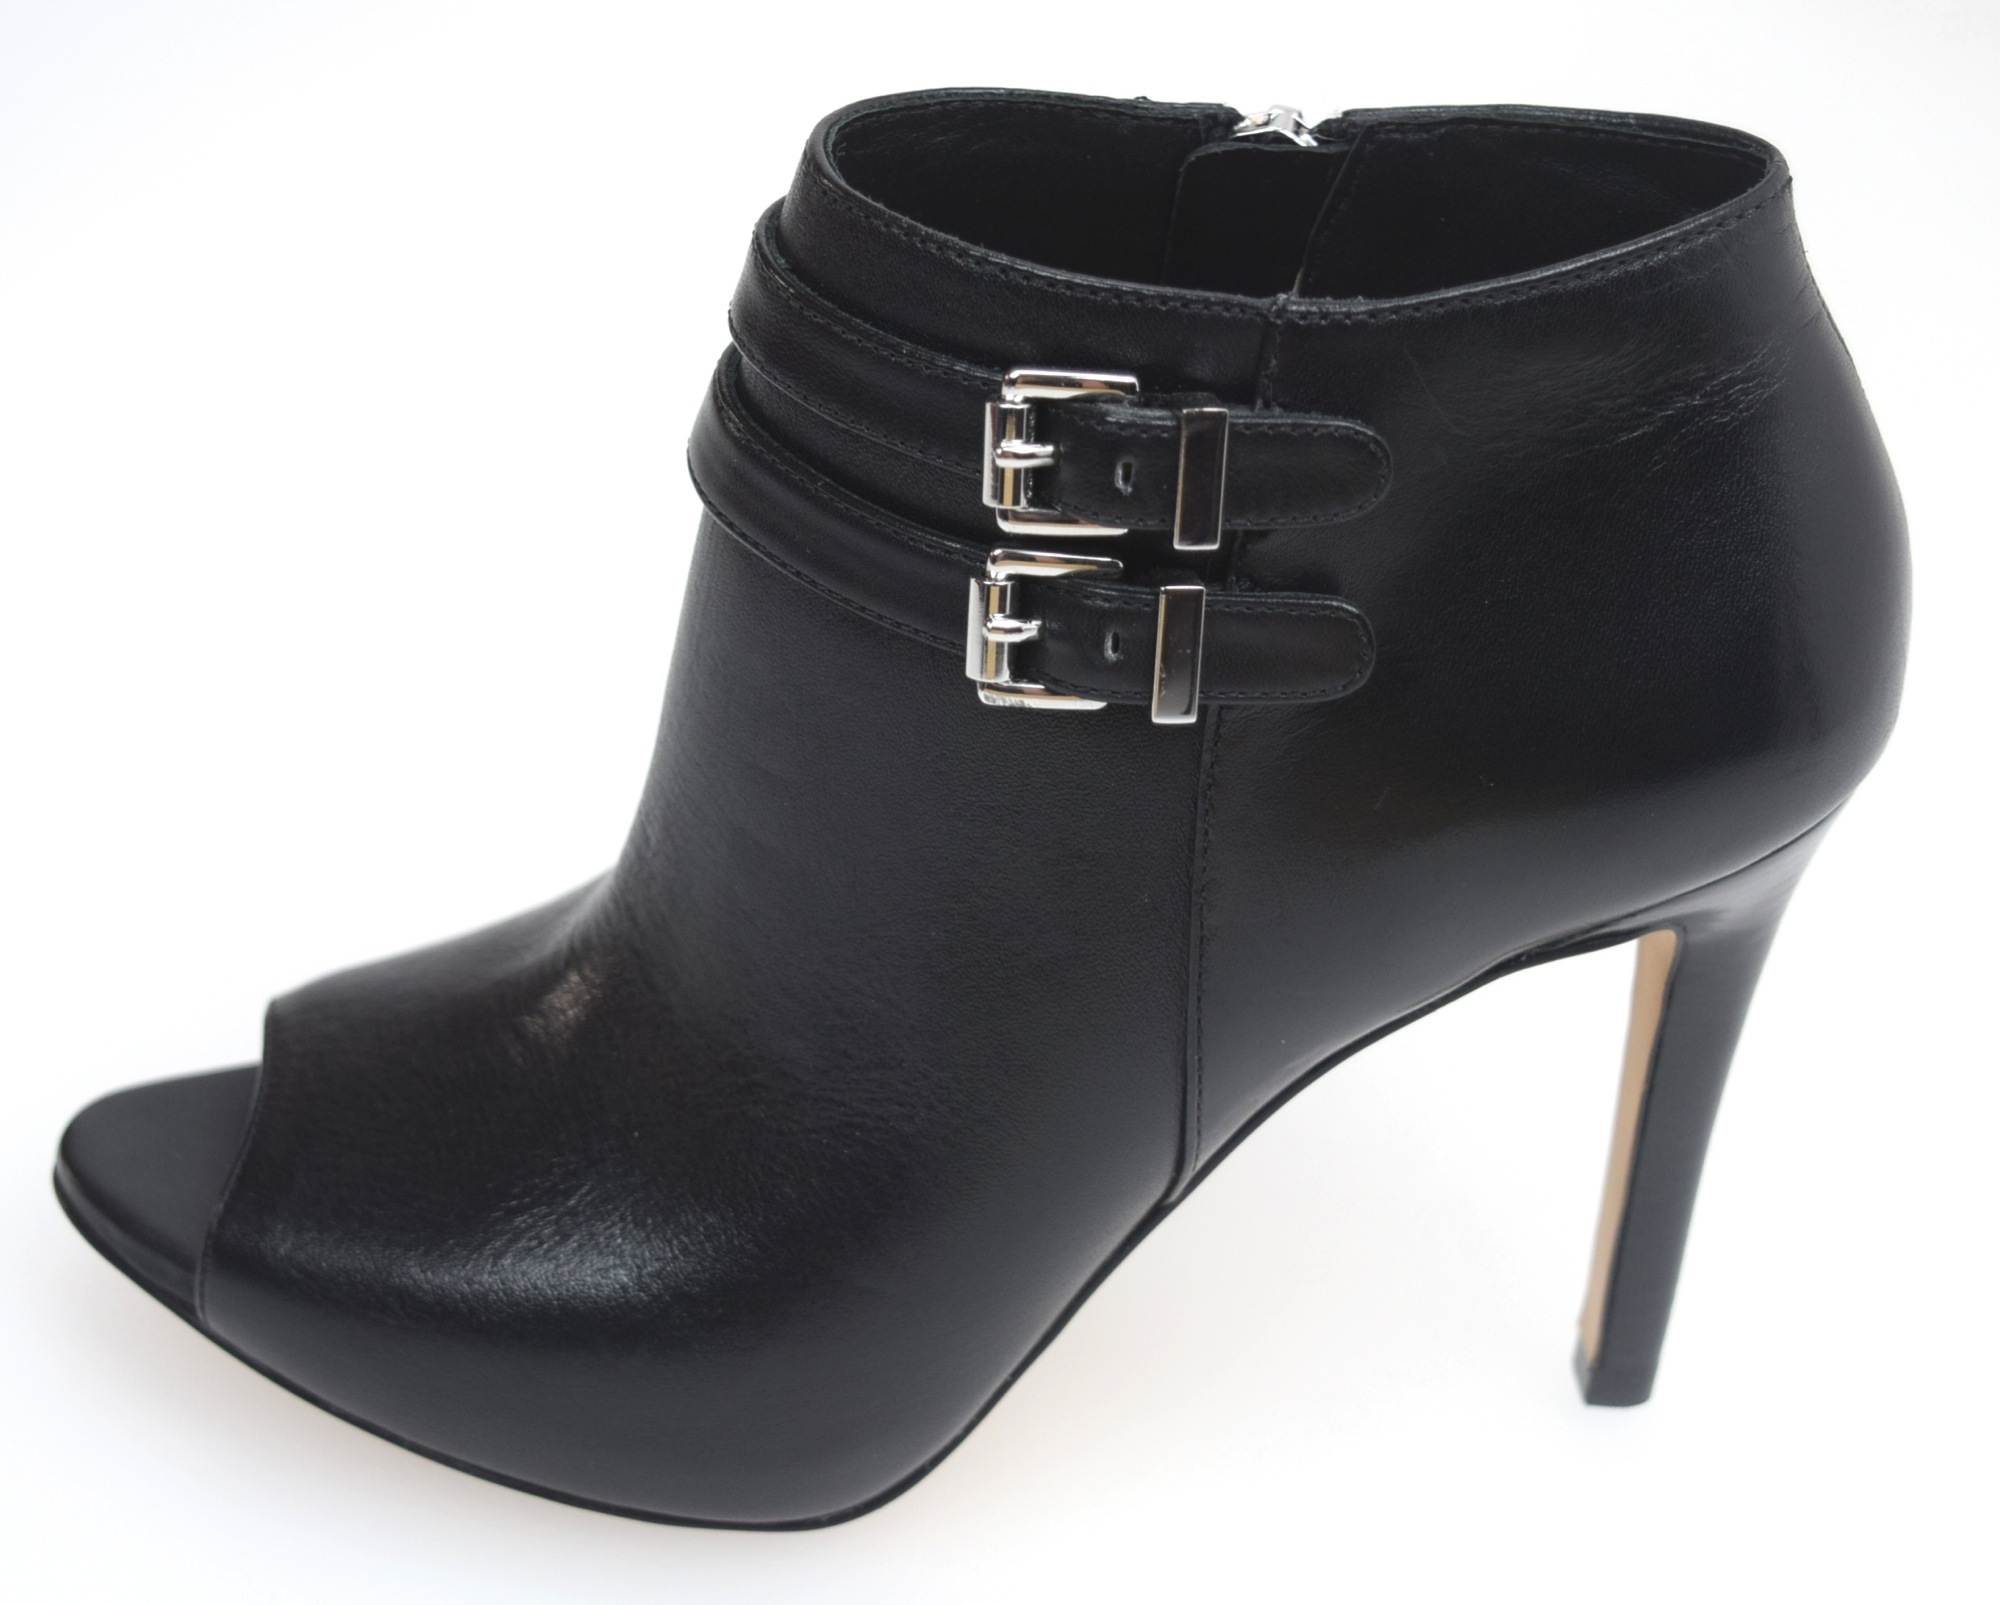 39aec47a33f Details about MICHAEL KORS WOMAN OPEN TOE ANKLE BOOT BLACK LEATHER SAYLOR  BOOTIE 40T5SYME7L